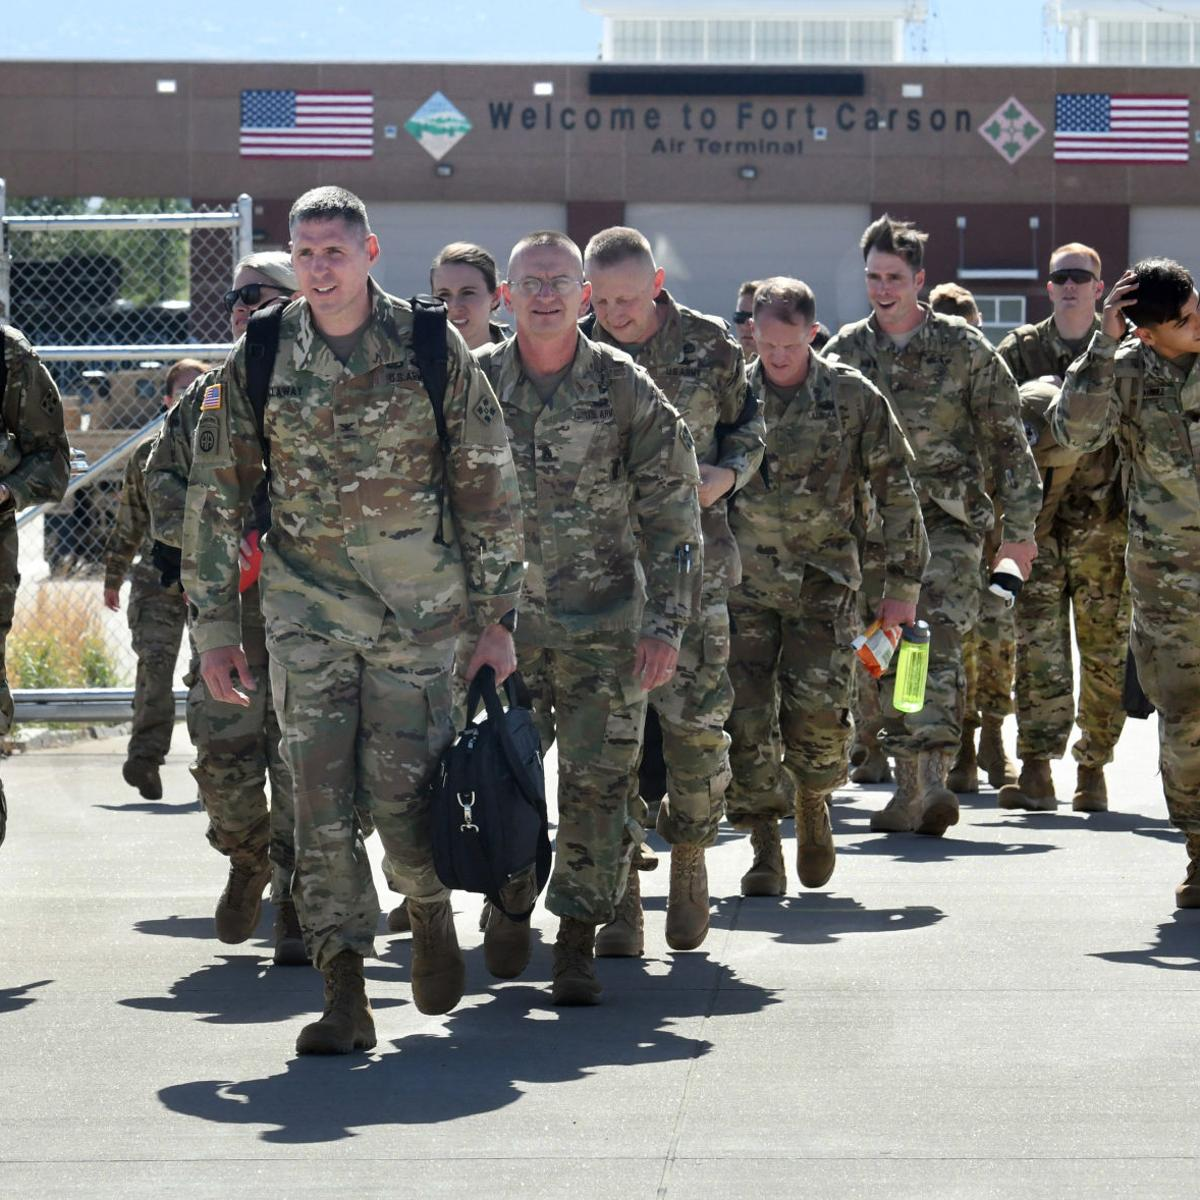 Soldiers from Fort Carson's 4th Combat Aviation Brigade